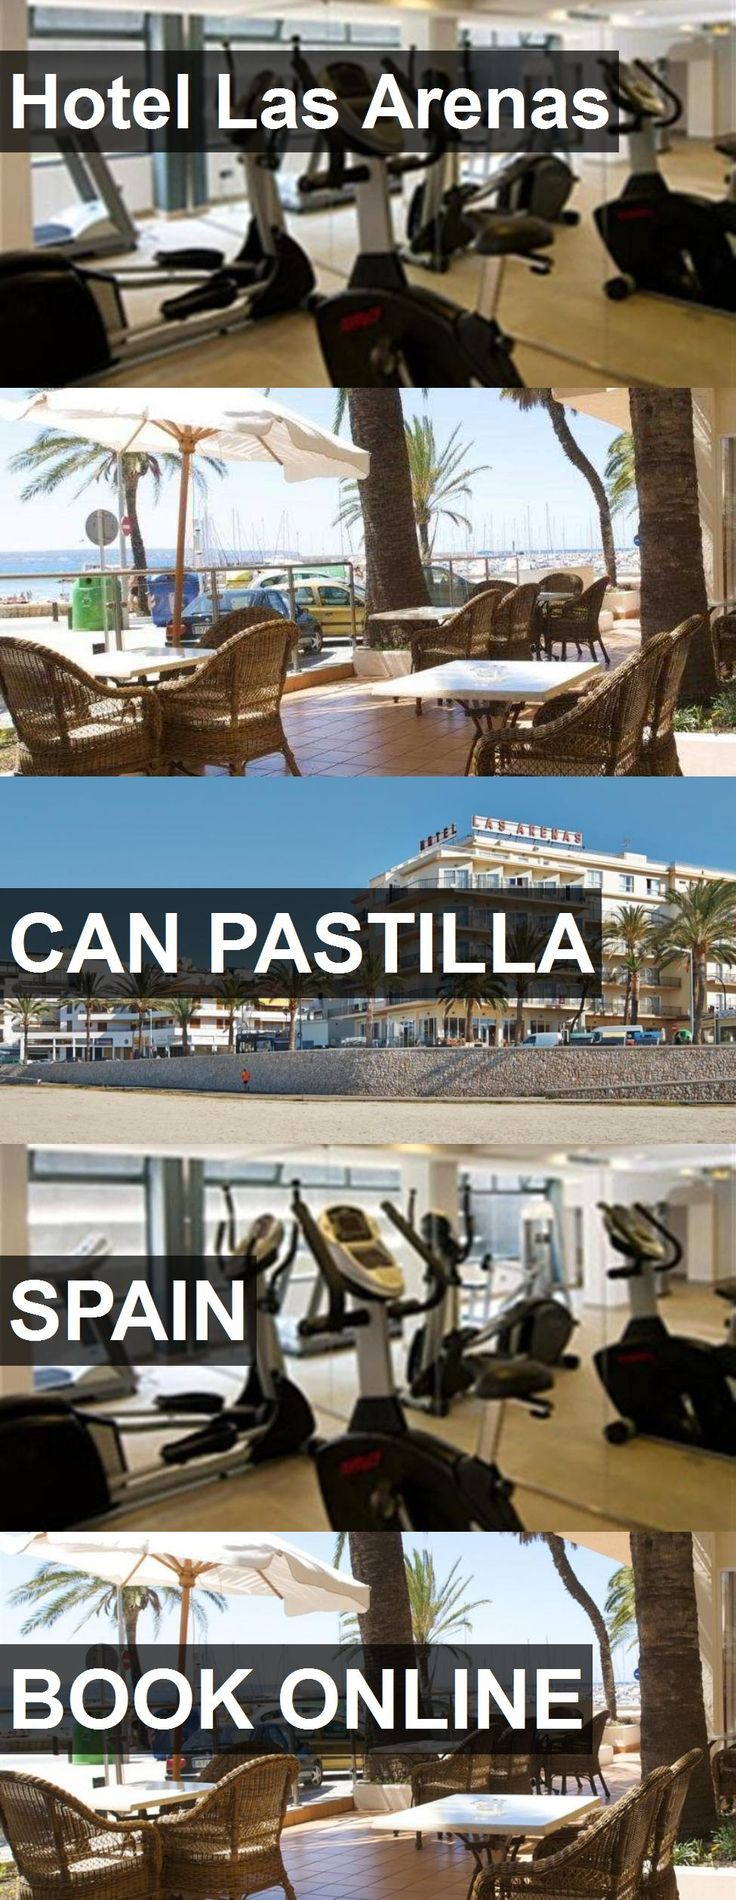 Hotel Las Arenas in Can Pastilla, Spain. For more information, photos, reviews and best prices please follow the link. #Spain #CanPastilla #travel #vacation #hotel